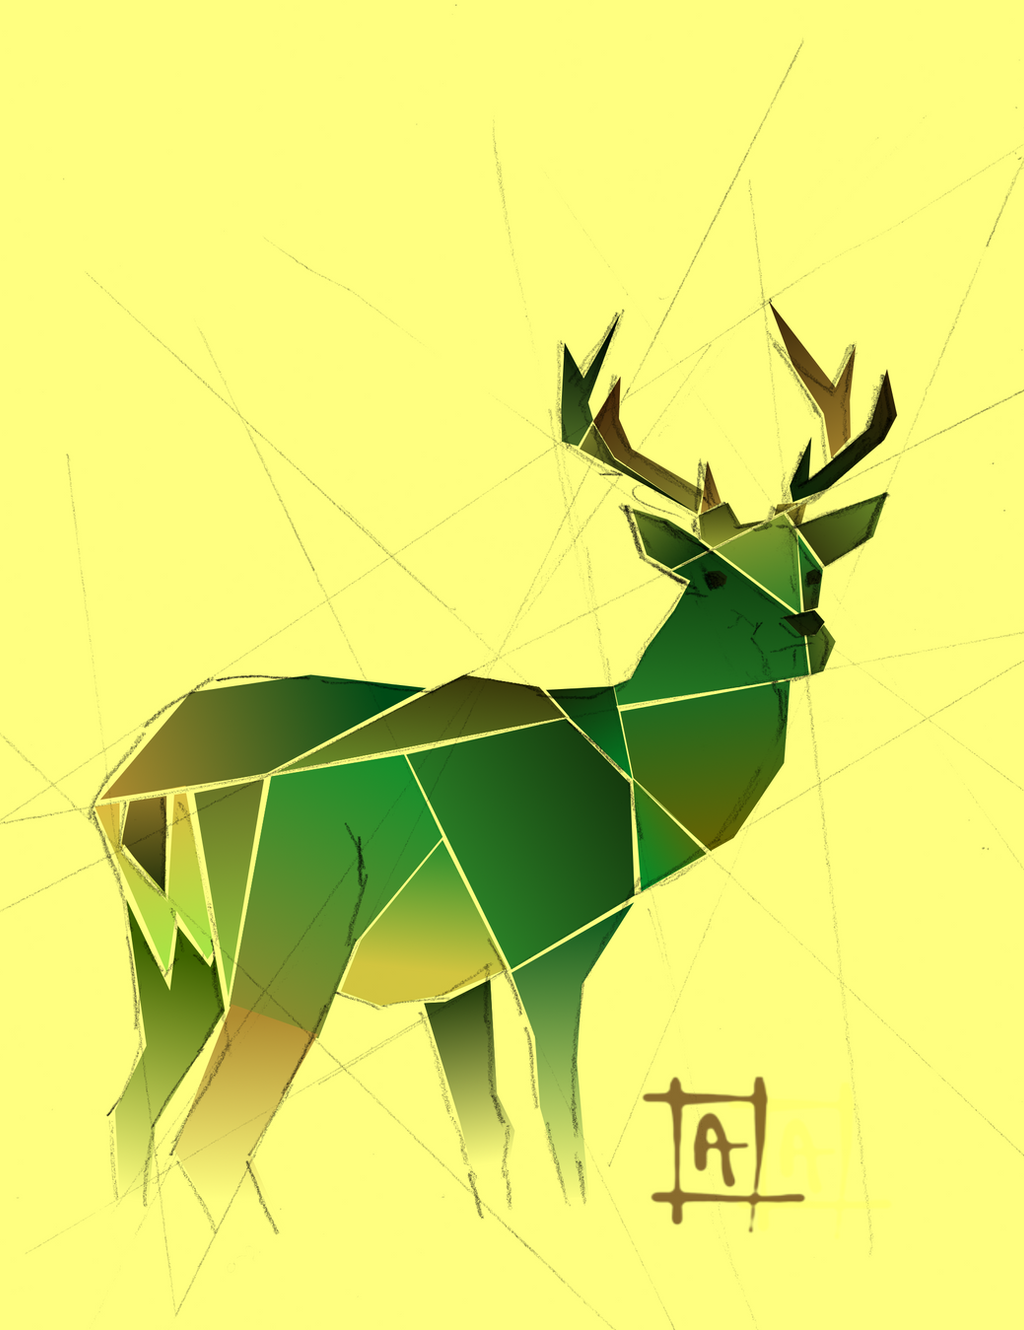 Green-deer Stag by Avalaa